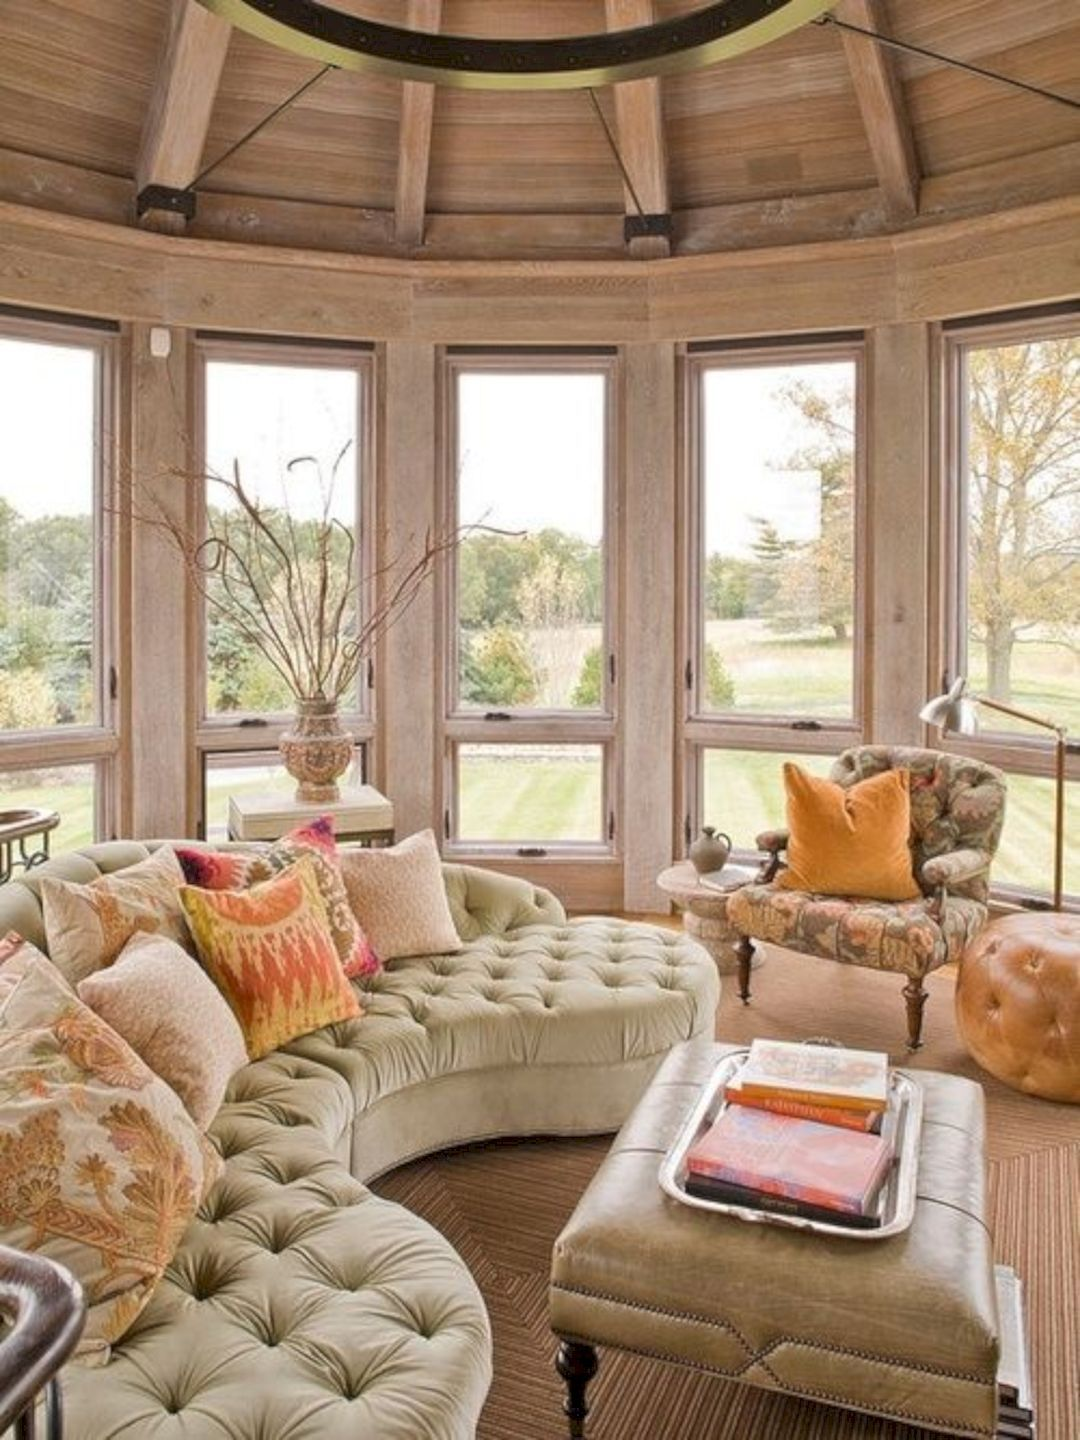 Rooms By Design Furniture Store: 16 Furniture Ideas To Warm Up Your Family Room